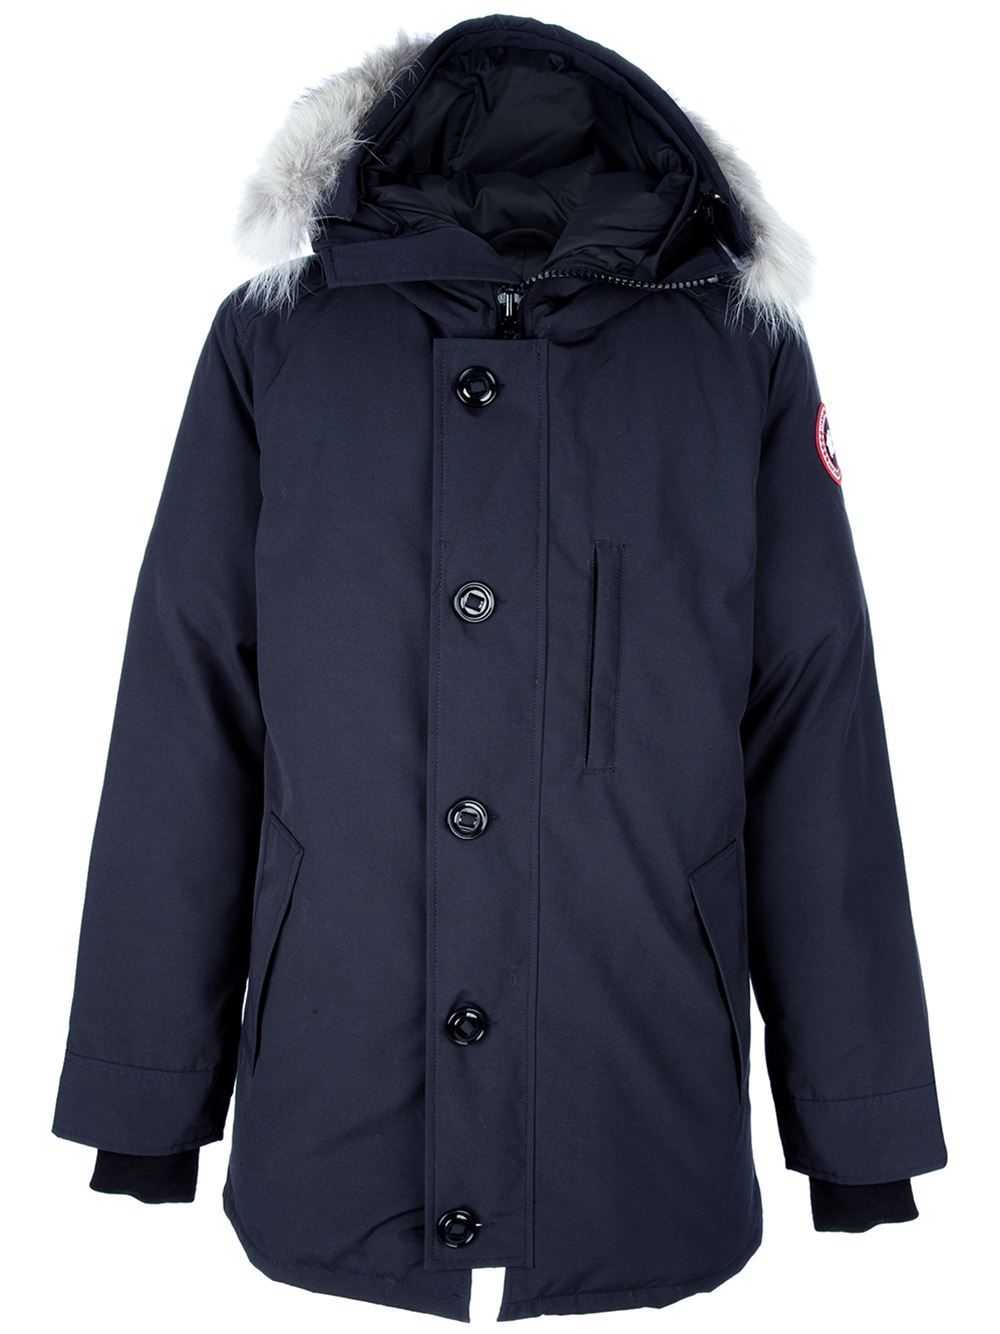 Superdry Clothing Macy S